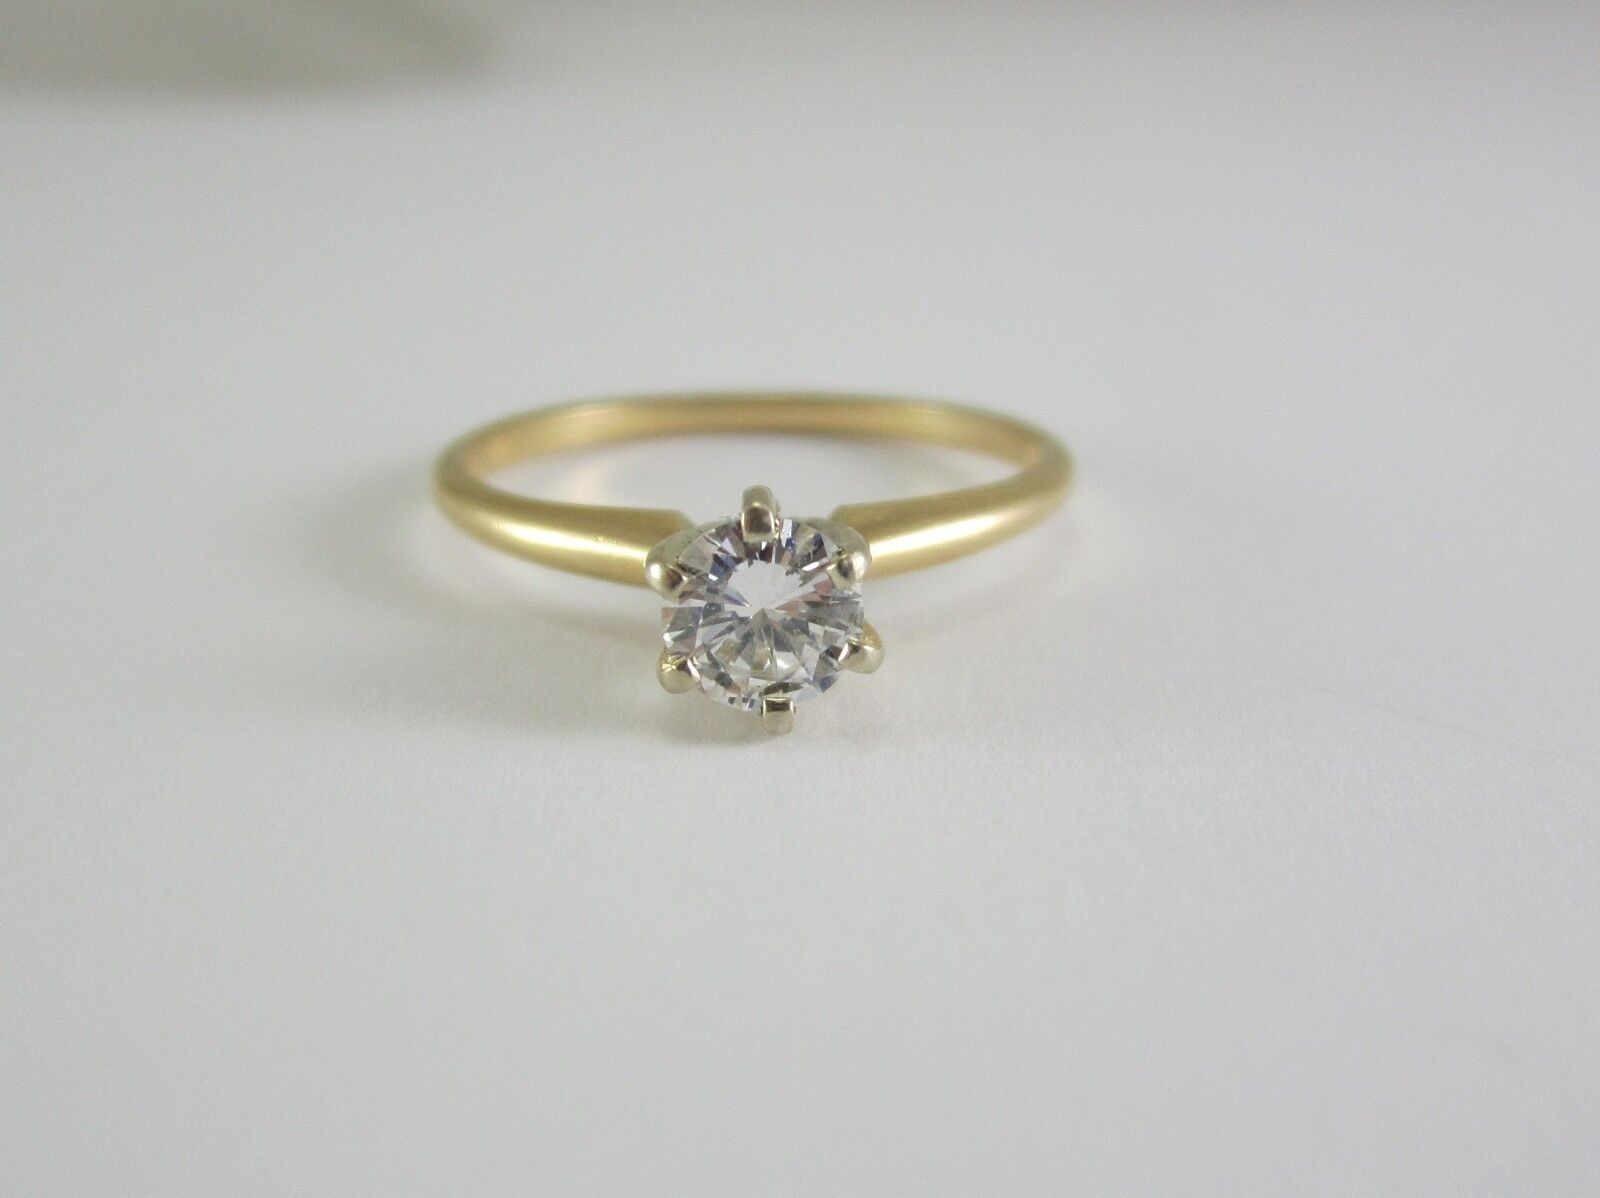 BEAUTIFUL LADIES 14K gold 0.40CT. DIAMOND SOLITAIRE ENGAGEMENT RING 1.8G